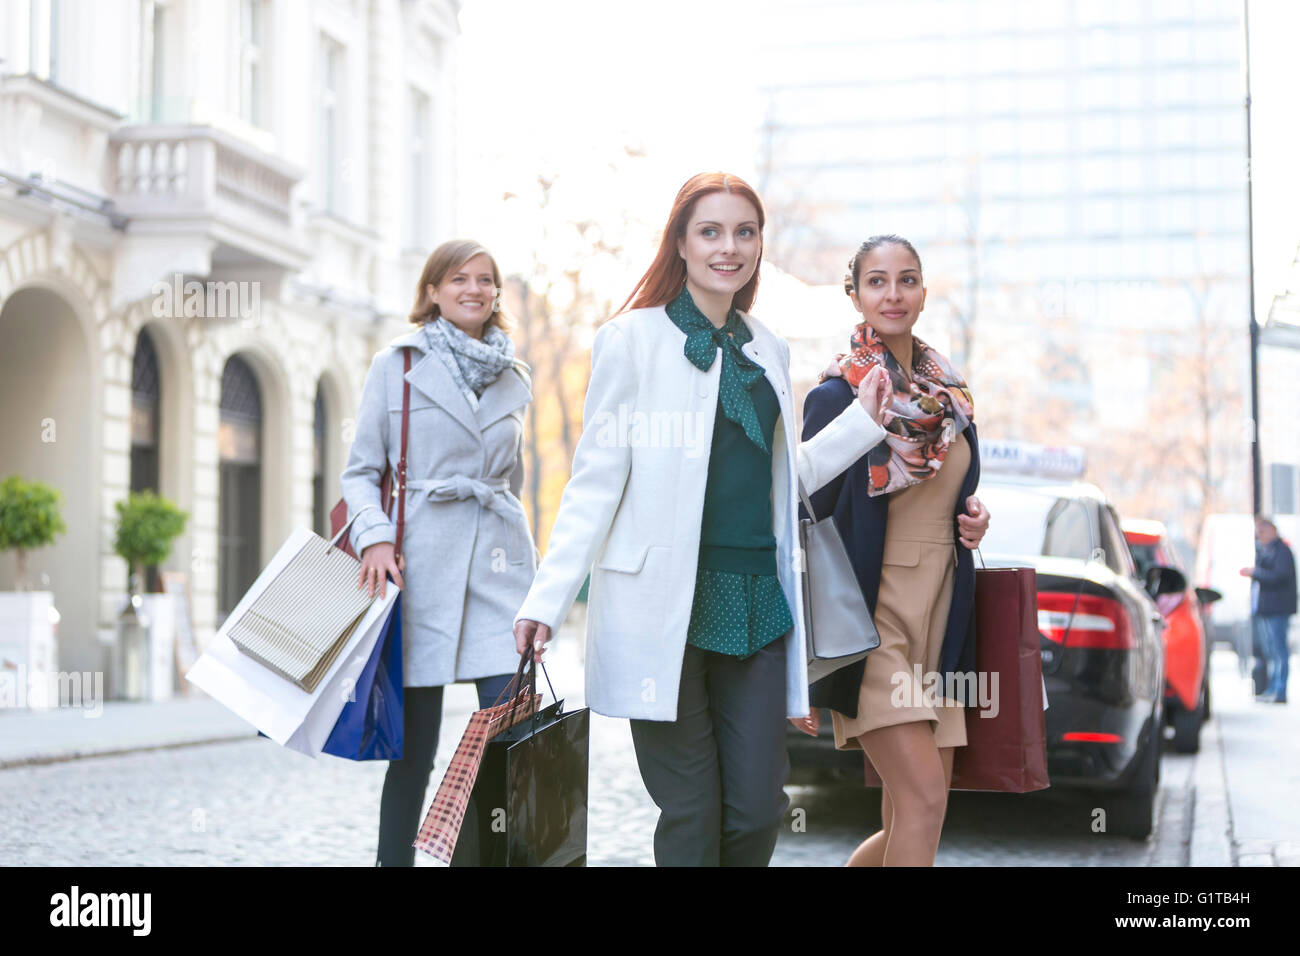 Smiling women with shopping bags crossing city street - Stock Image